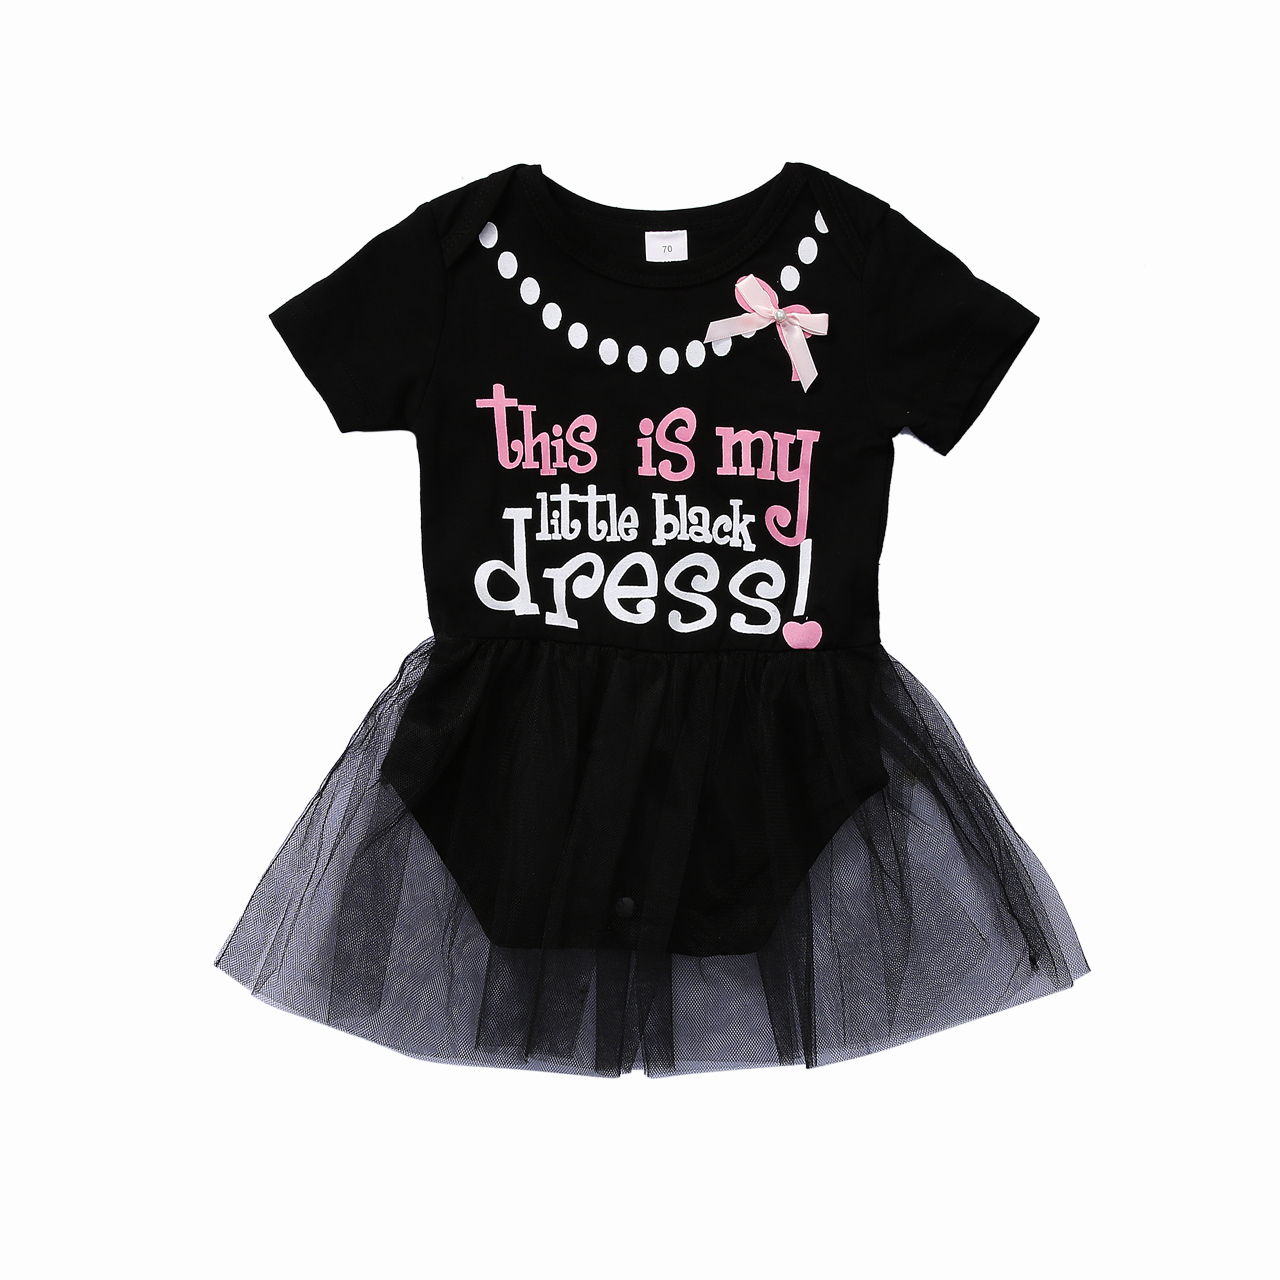 Black dress for baby girl - 2017 Summer Newborn Baby Girl Clothes My Little Black Dress Letter Printed Tutu Skirted Romper Outfits